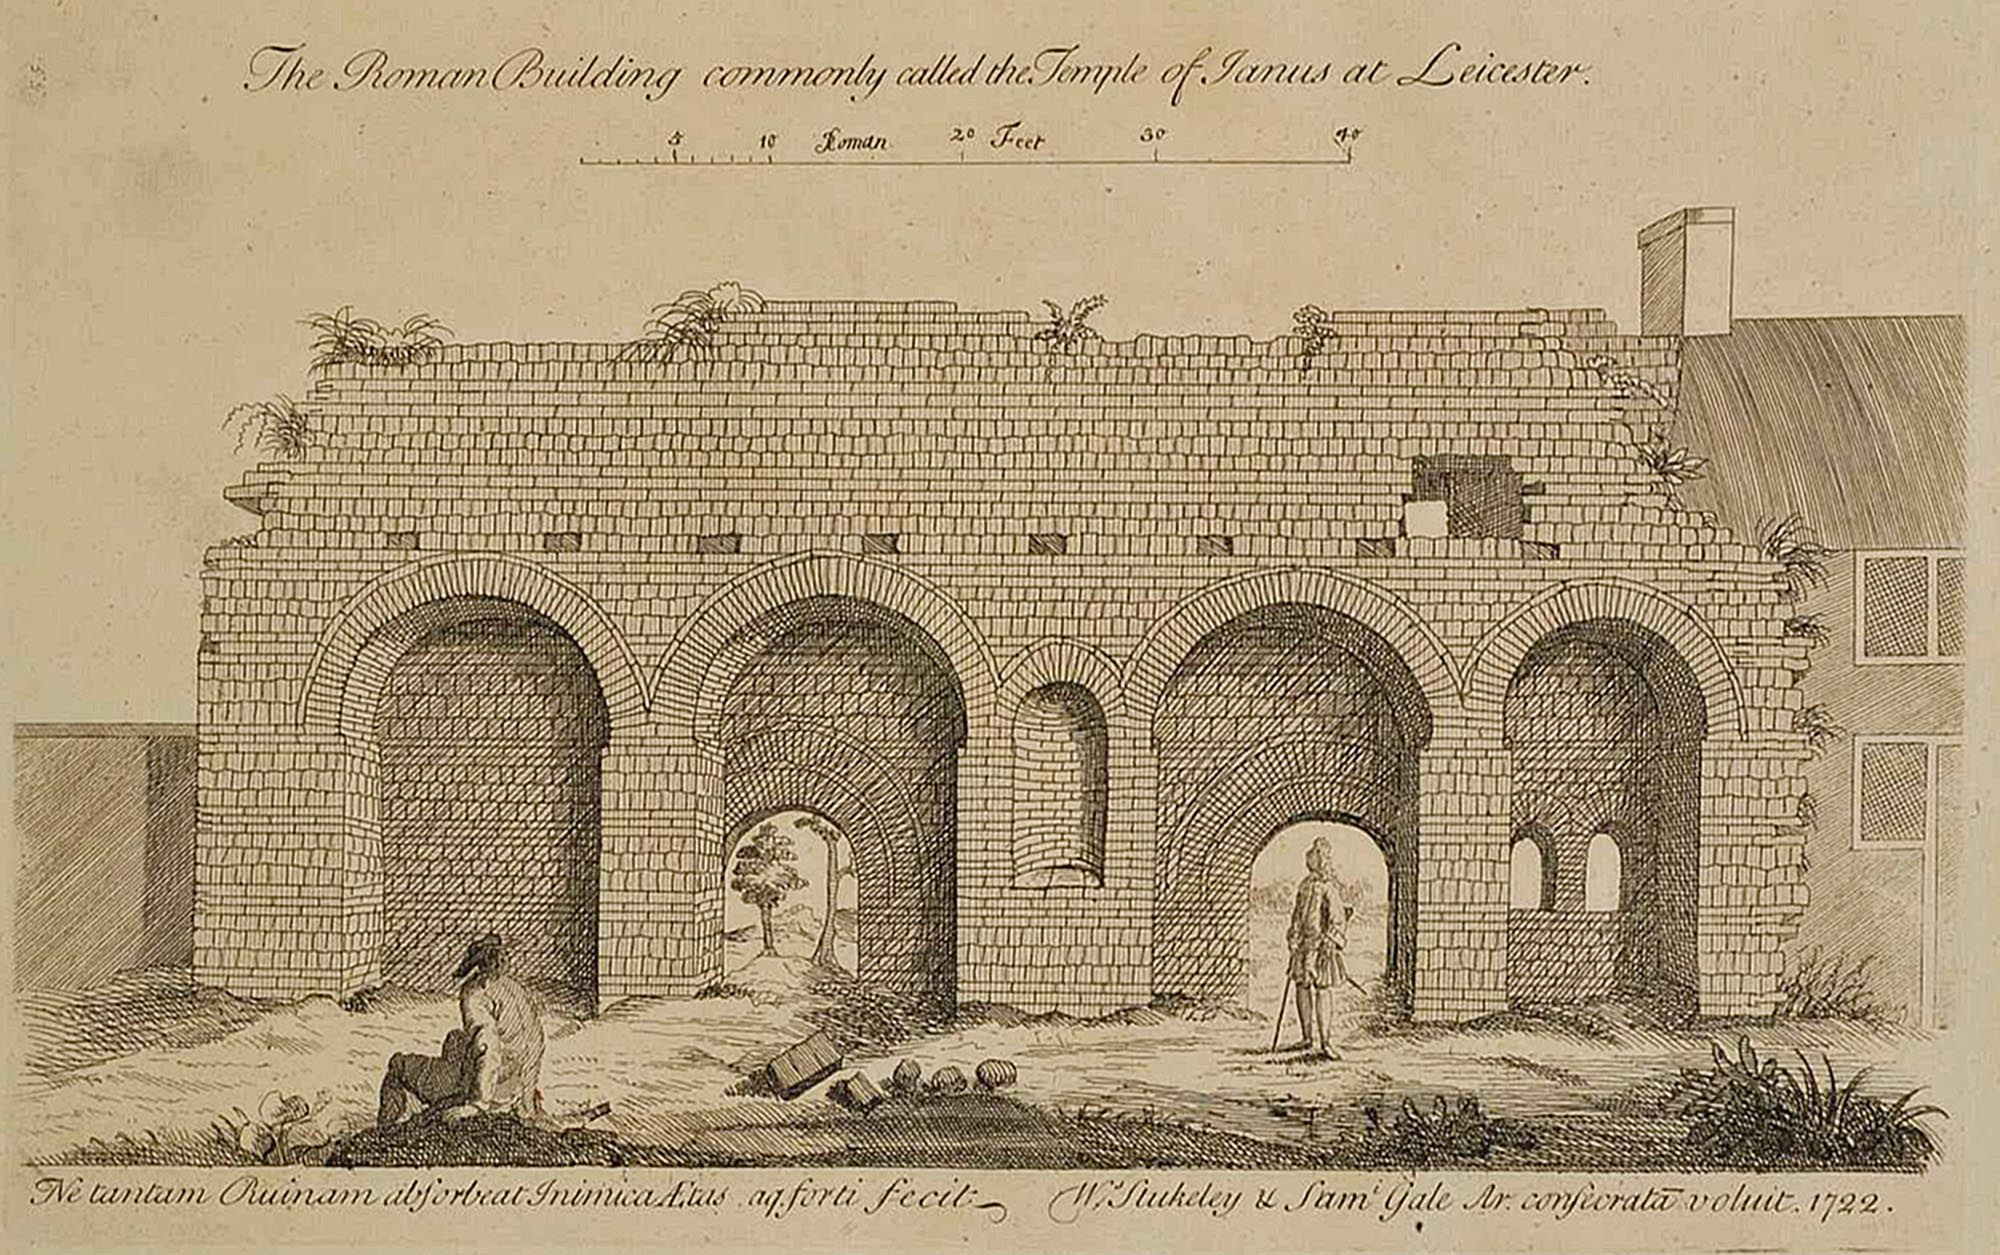 'The Roman Building commonly called the Tempe of Janus (Jewry Wall) at Leicester' by W. Stuckley, 1722 - Stuckley's Itinerarium Curiosum